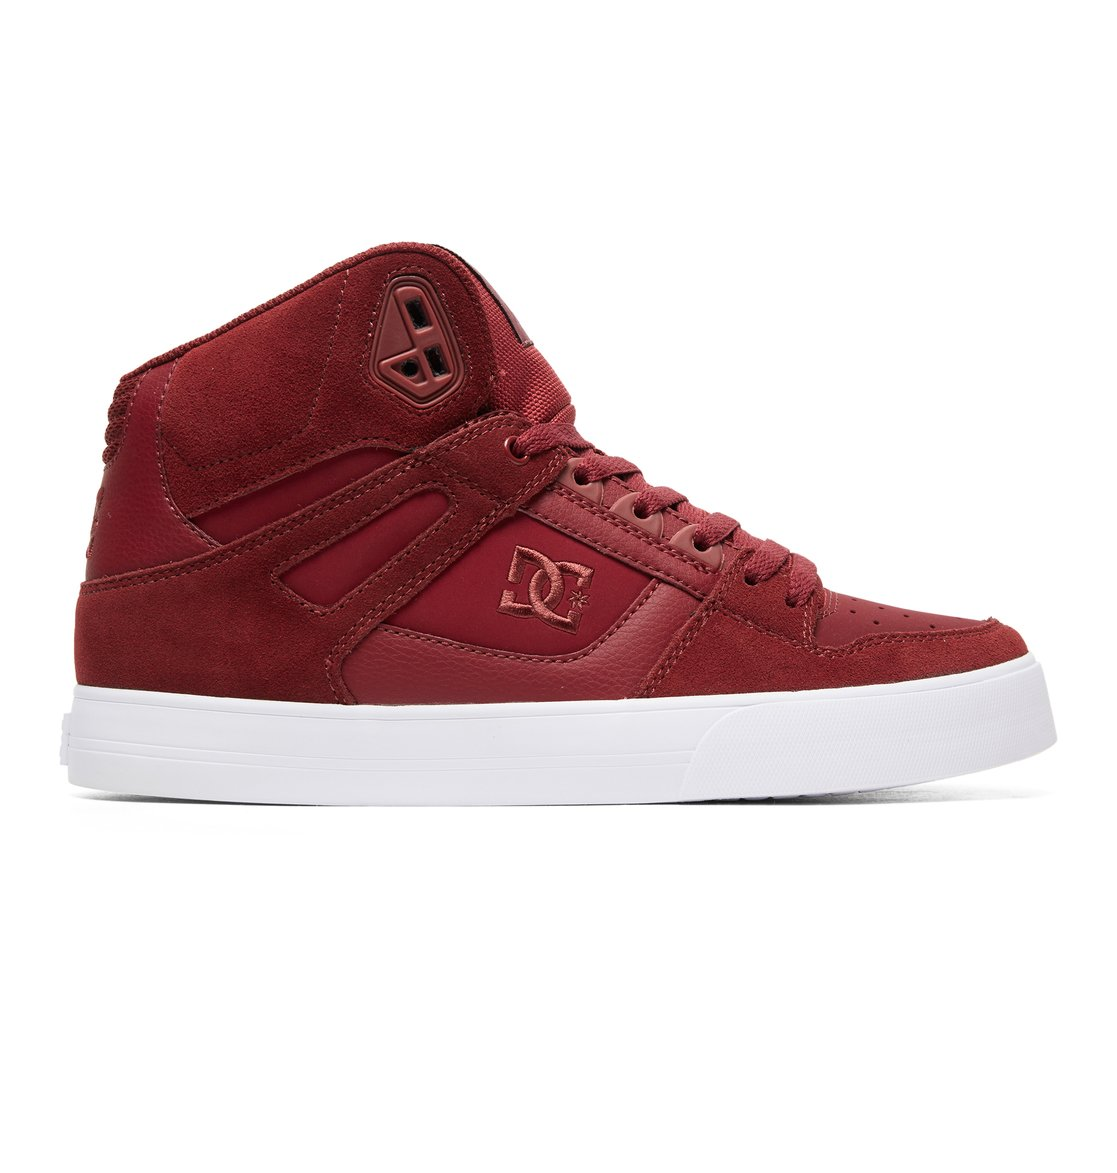 0 Pure SE High-Top Shoes Red ADYS400043 DC Shoes 07767092132